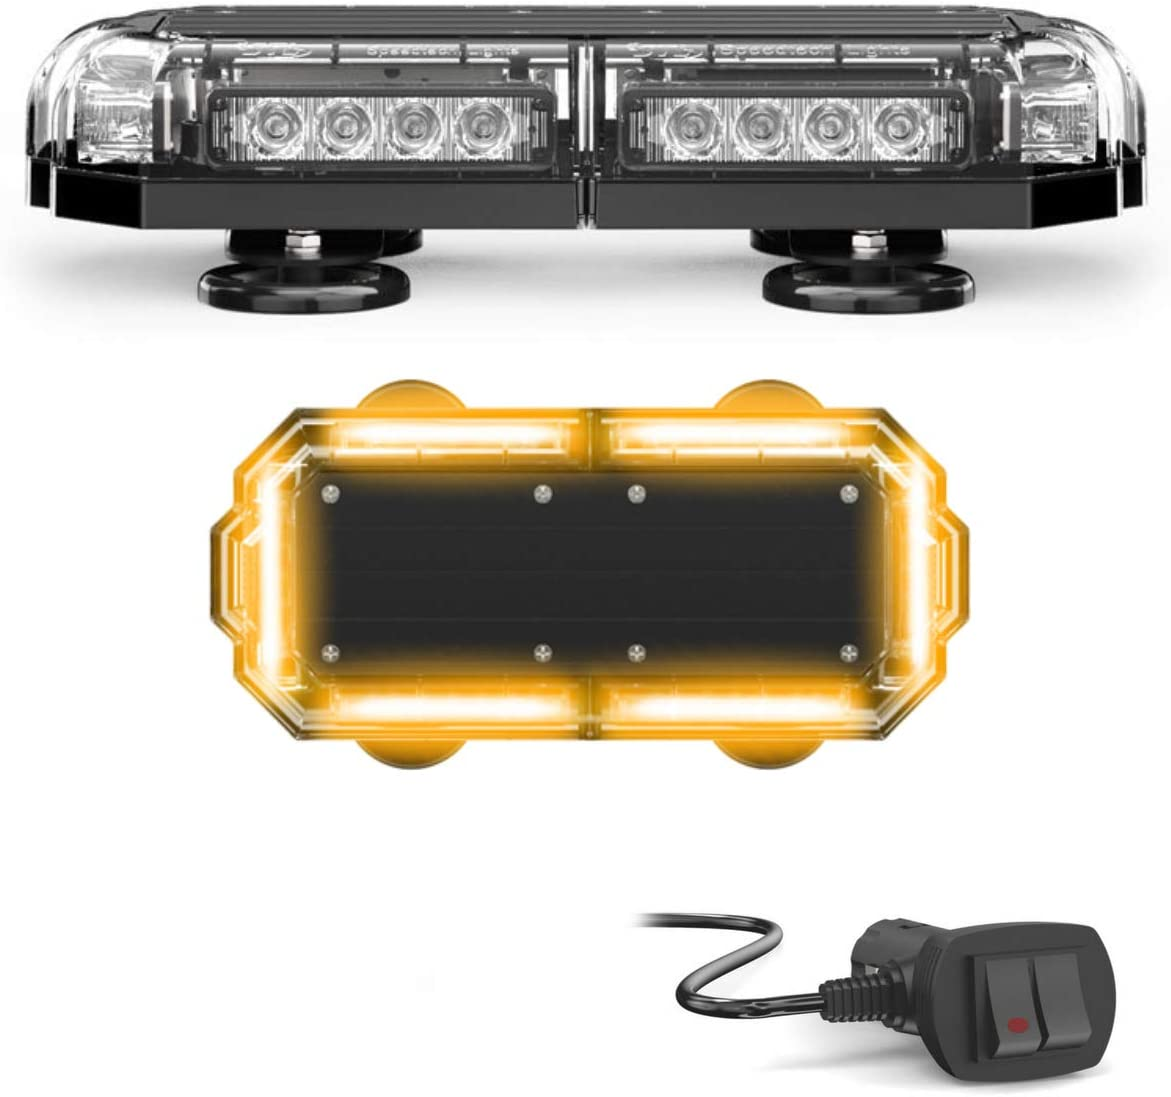 SpeedTech Lights Mini 14 72 Watts LED Strobe Lights for Trucks Plows and Emergency Vehicles with Magnetic Roof Mount in Red//Green Alternating Cars